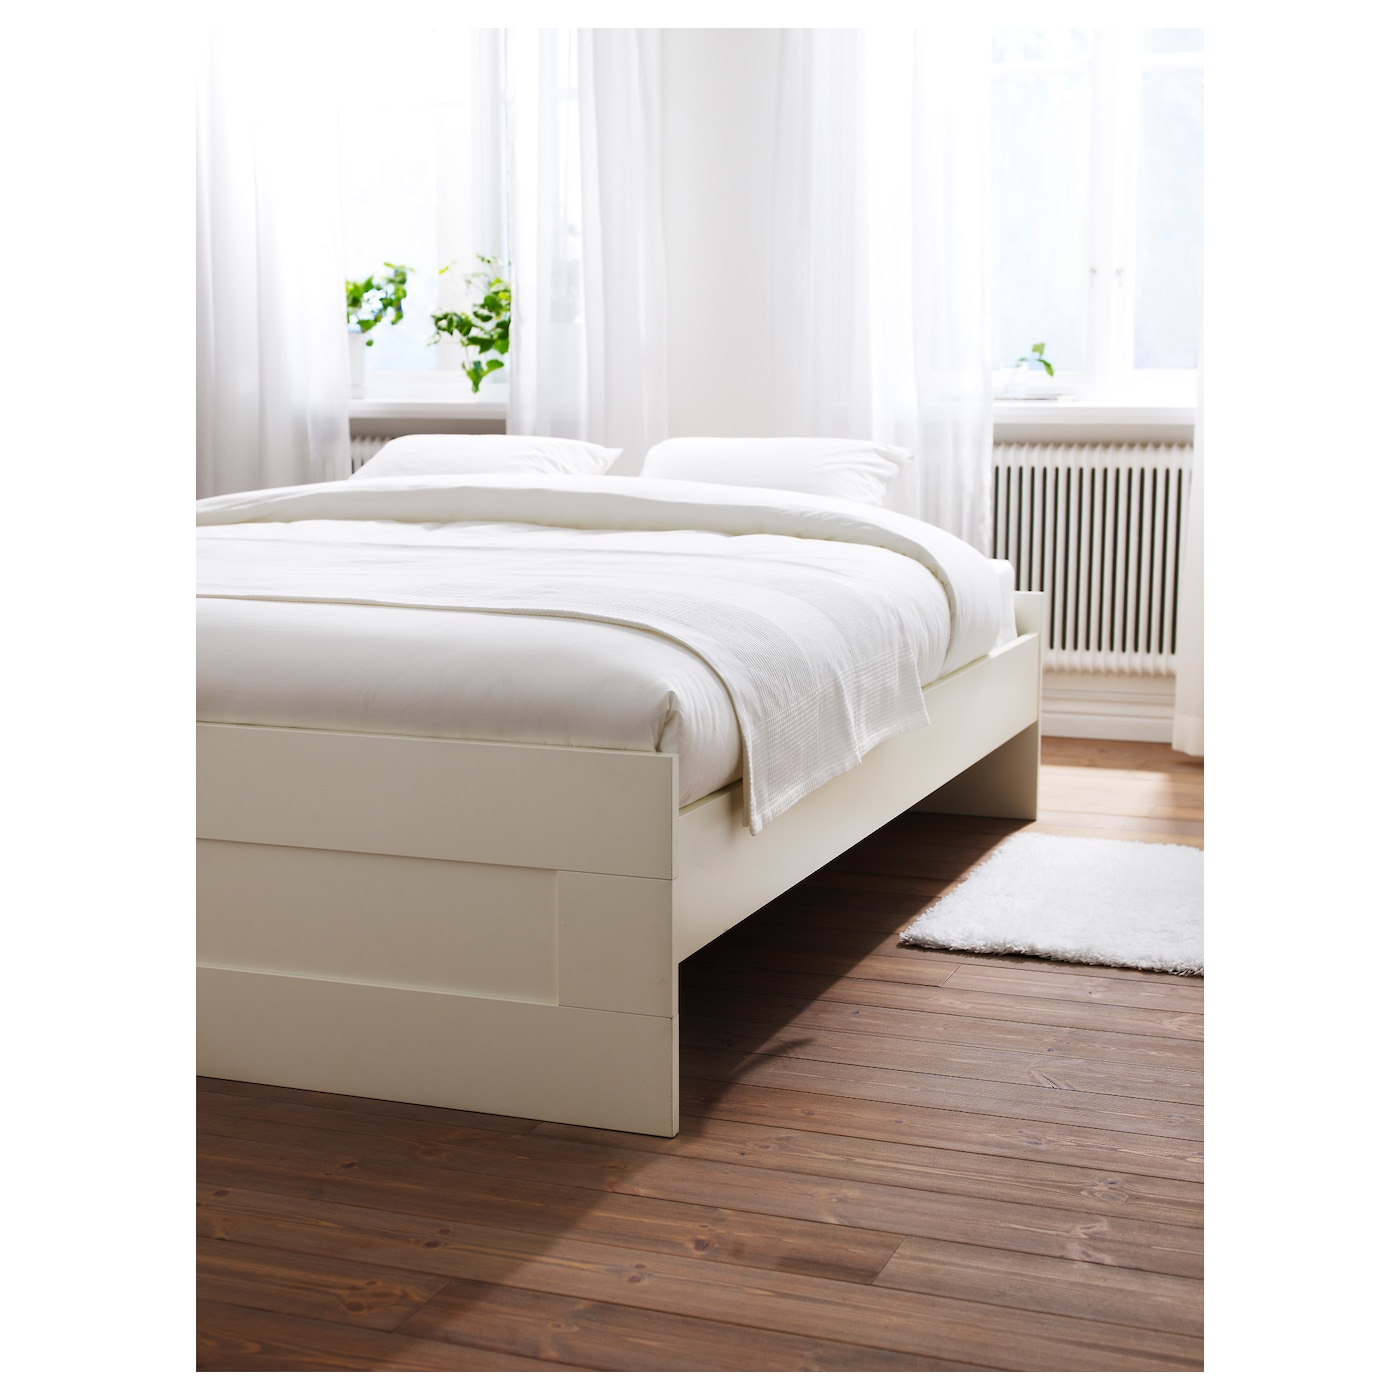 BRIMNES Bed frame White luröy Standard Double IKEA